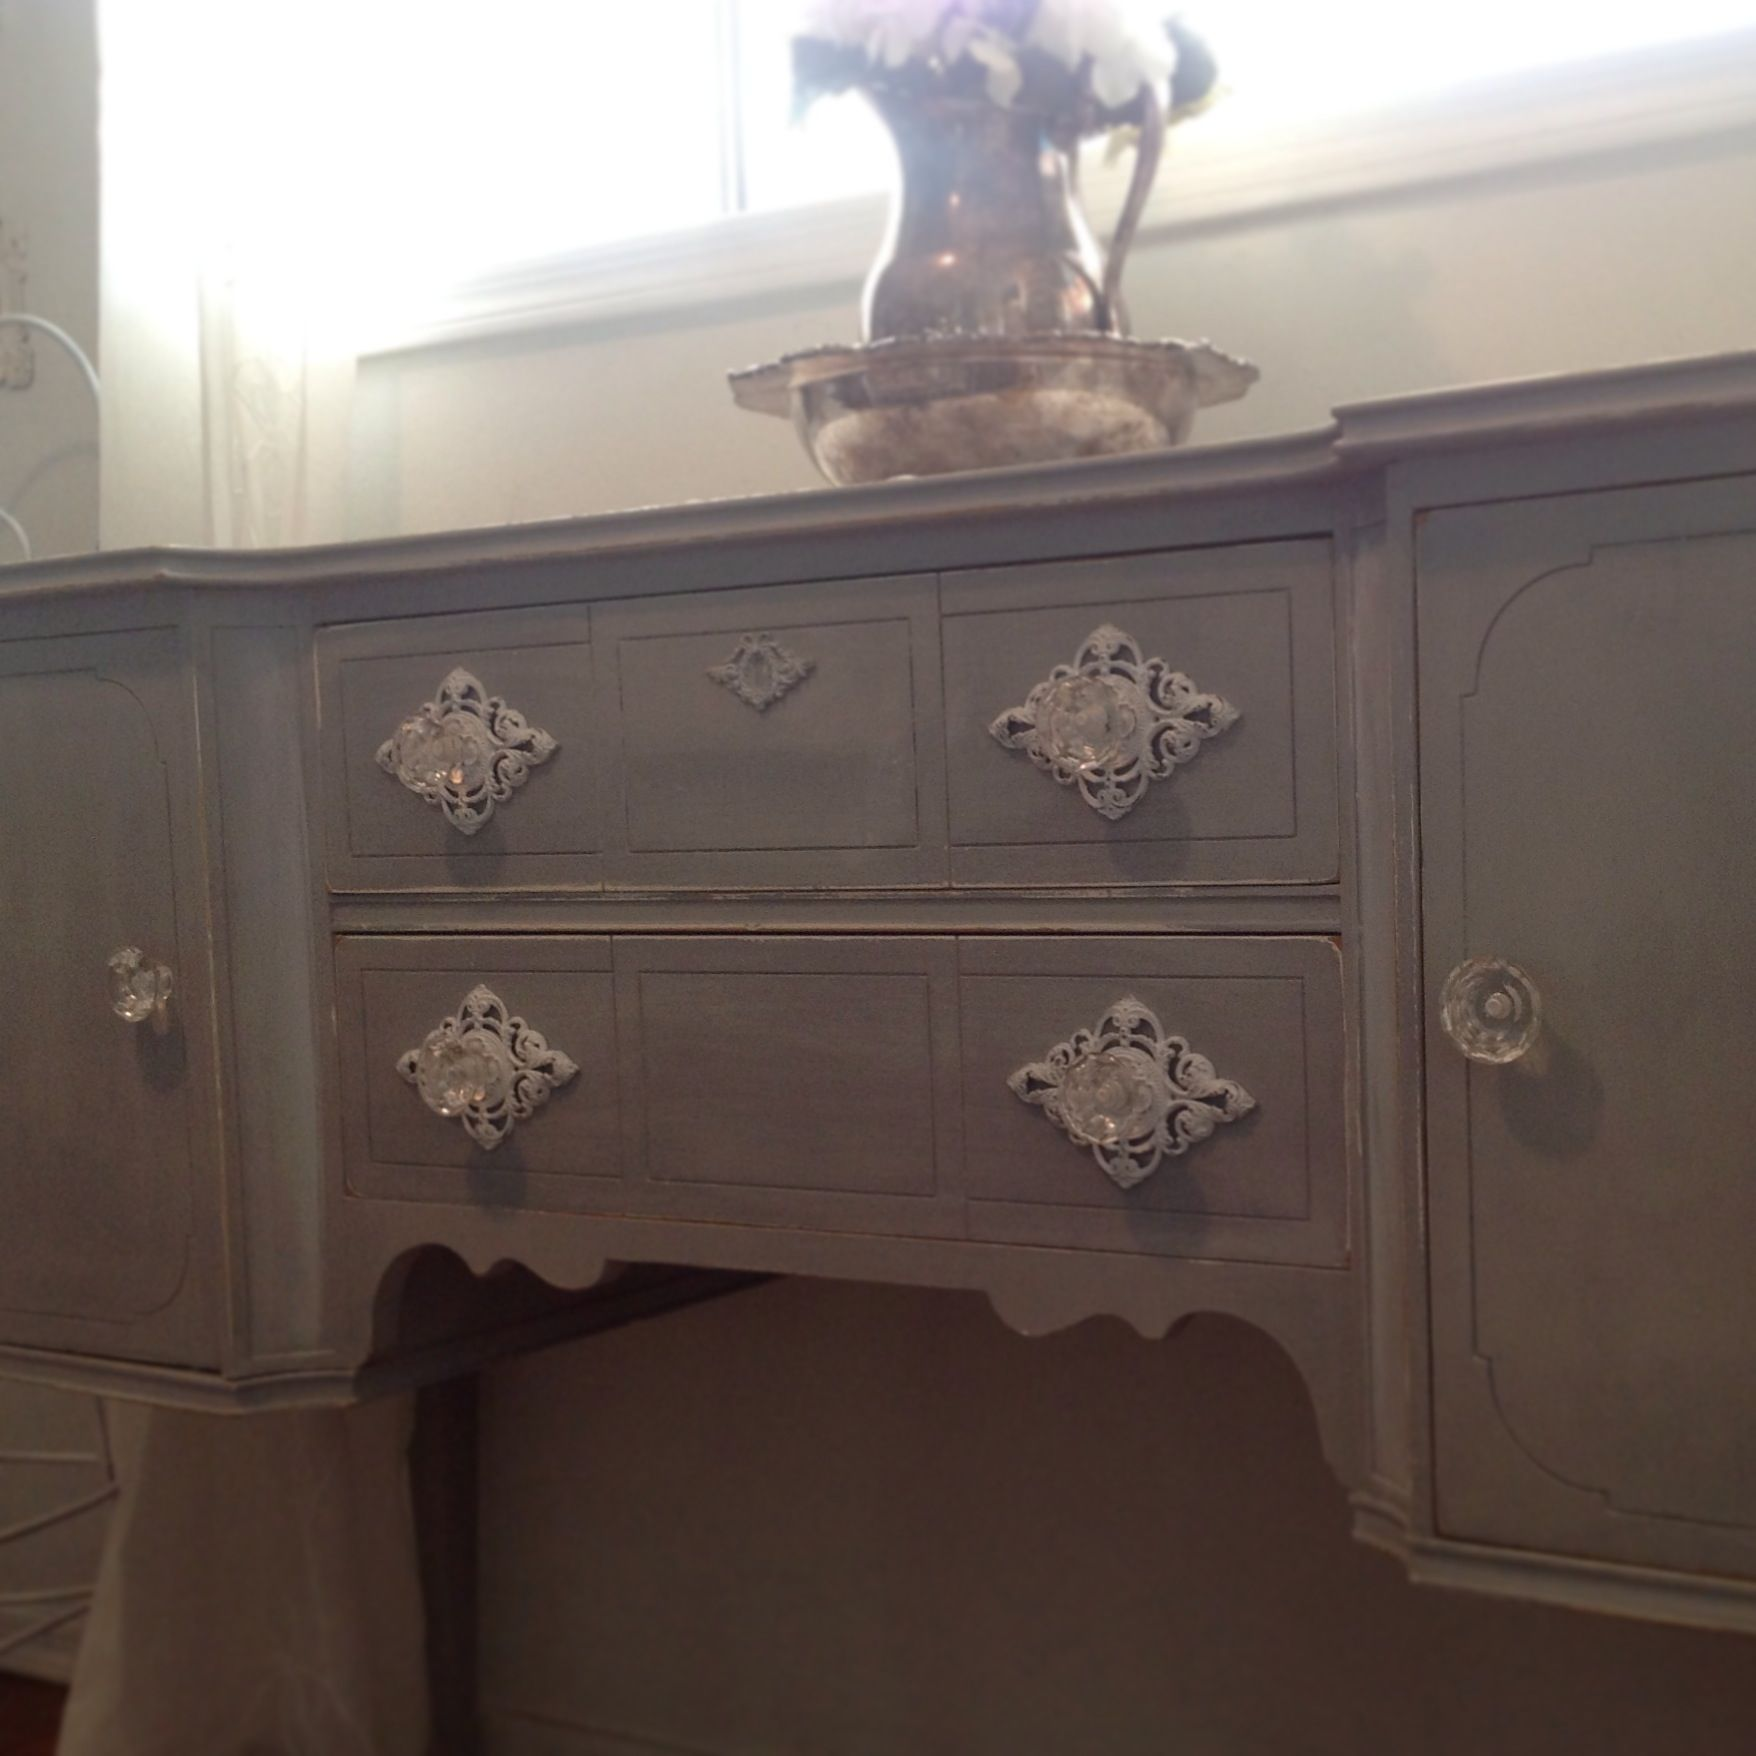 Find My Furniture: Where Do I Find This?? Small Buffet For My Dining Room~by